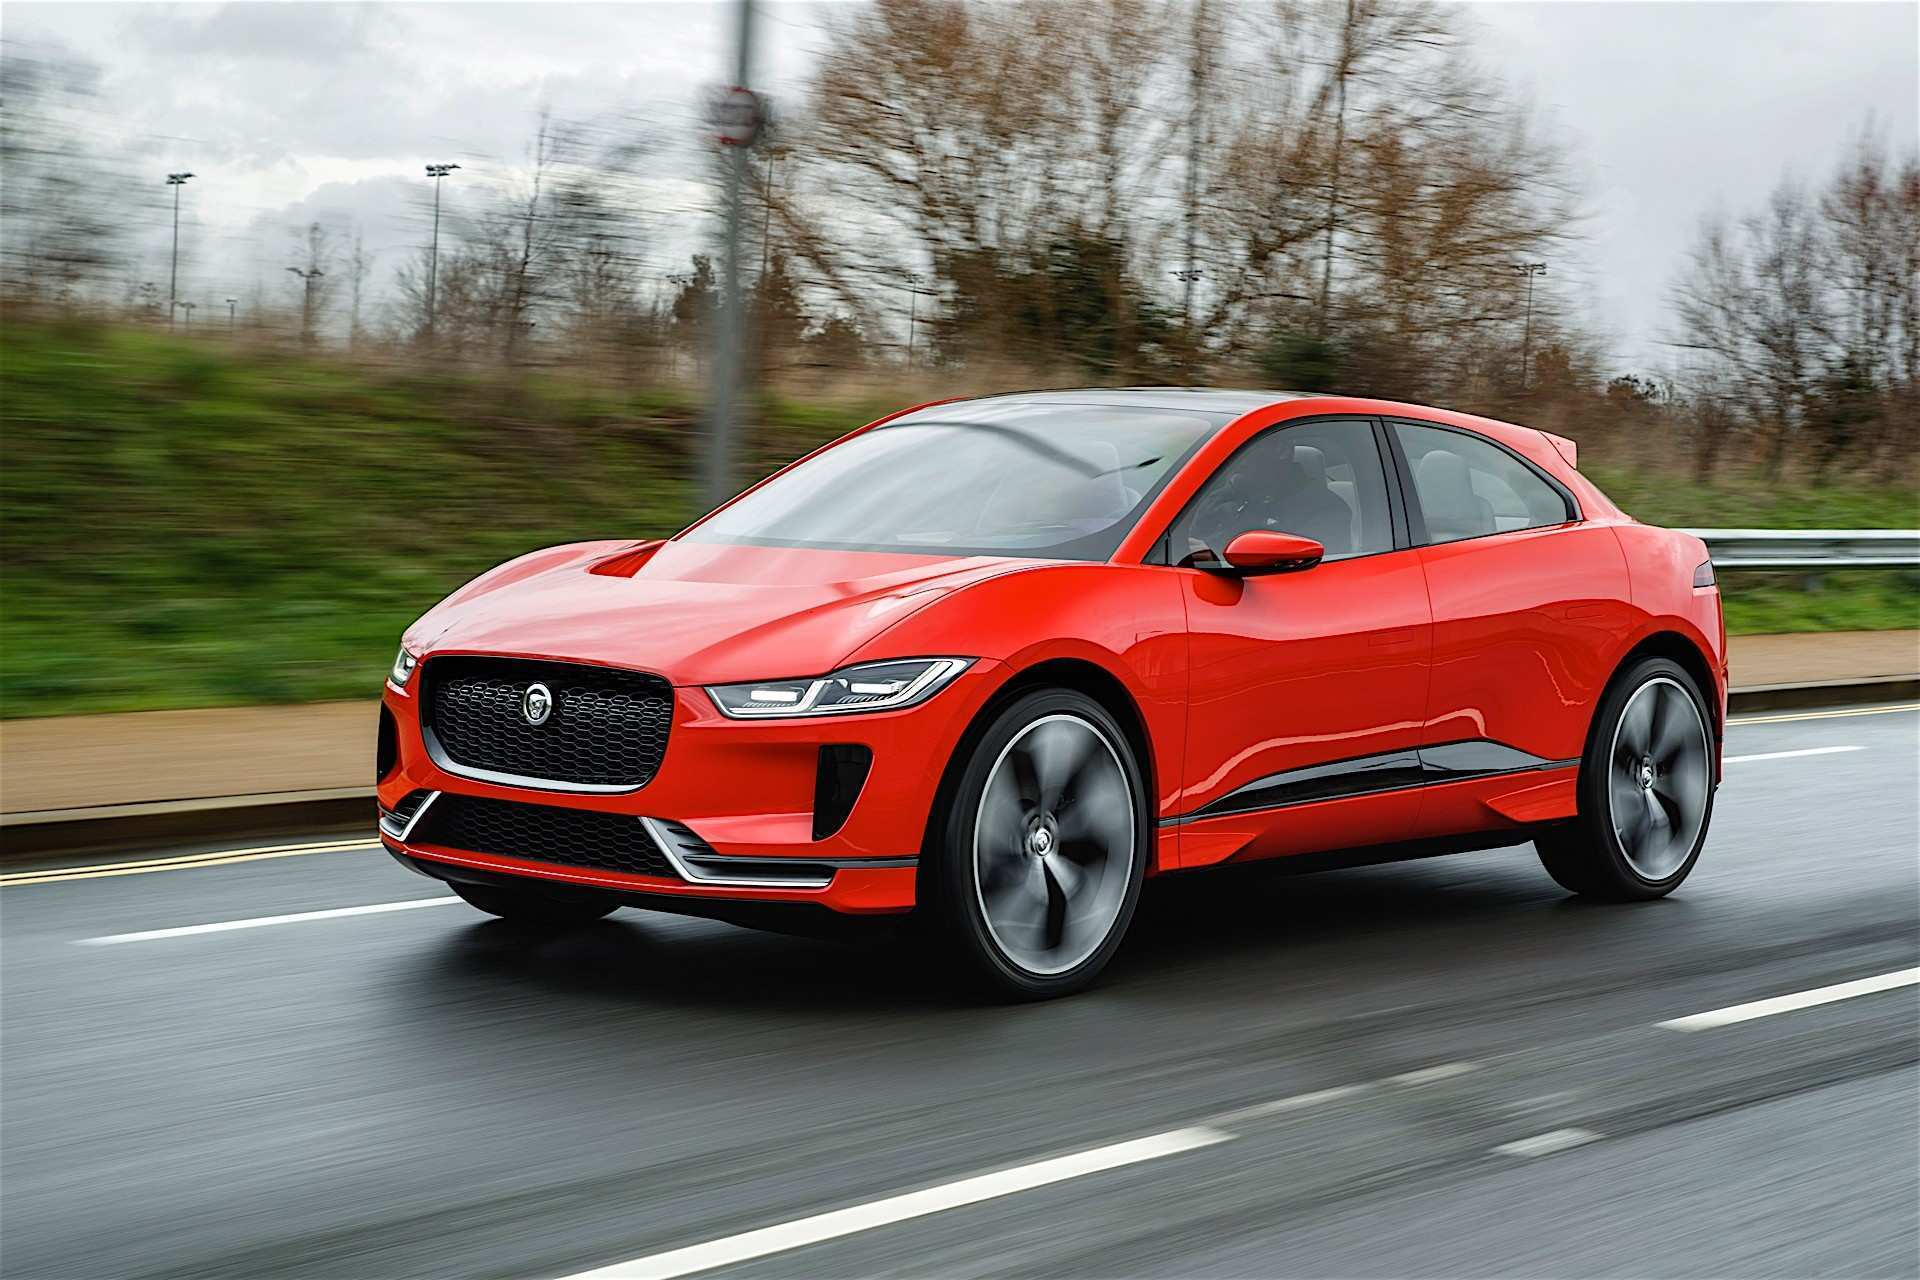 16 Gallery of 2019 Jaguar I Pace Electric New Review for 2019 Jaguar I Pace Electric